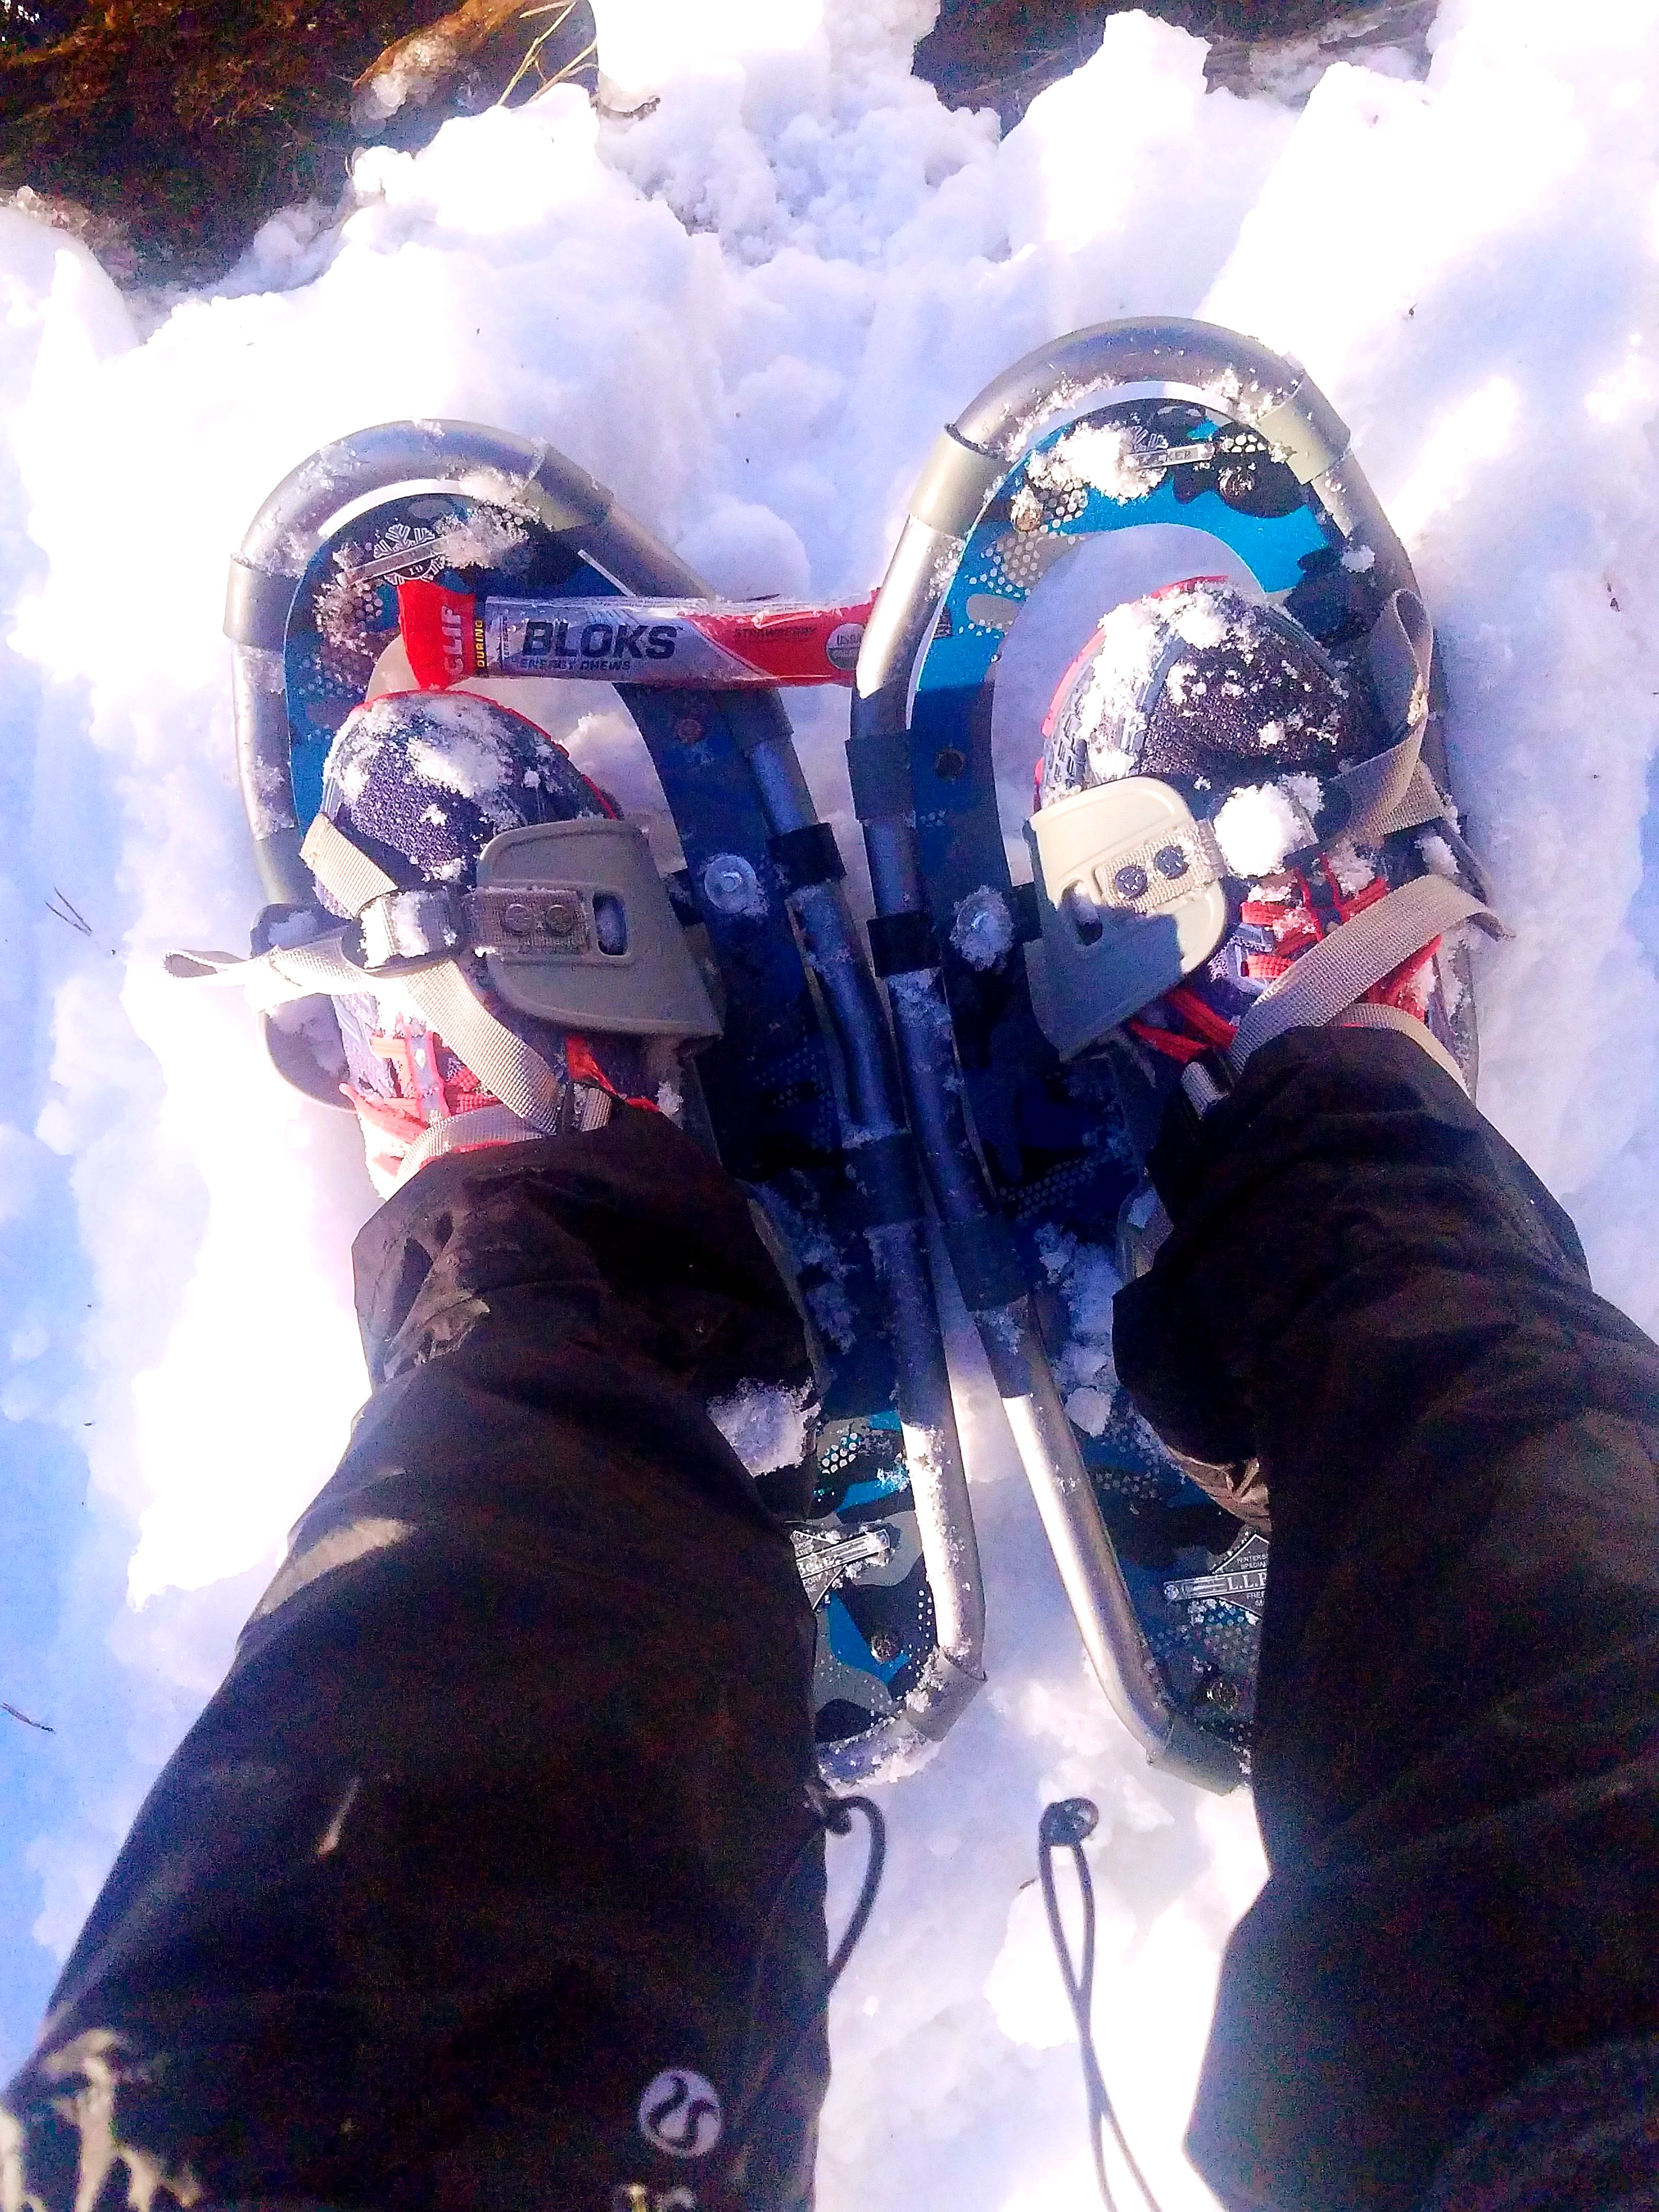 Human Powered Priviledge in Snow Shoe Running